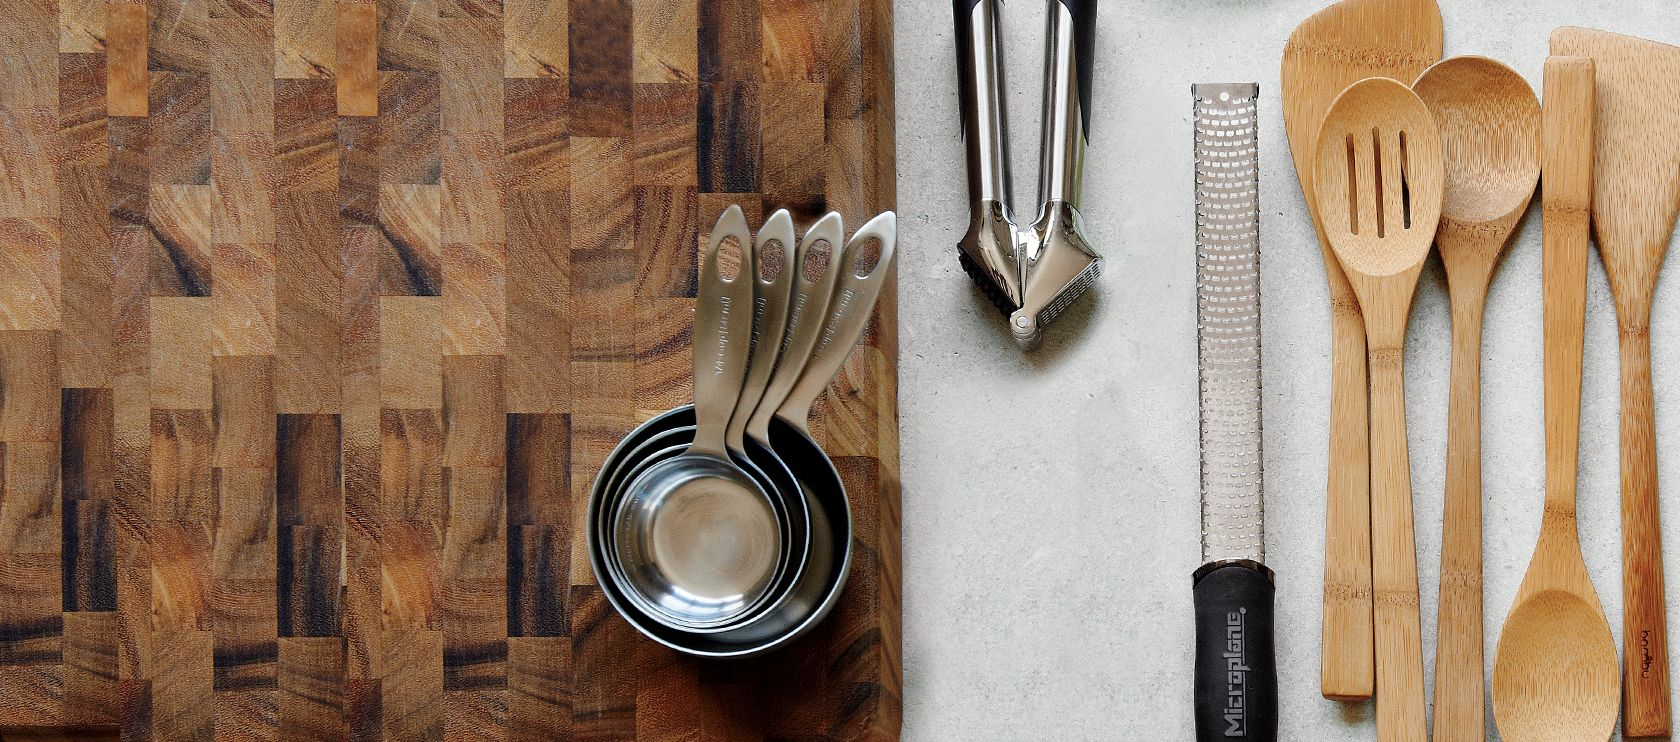 Kitchen Accessories Kitchen Tools And Accessories Crate And Barrel